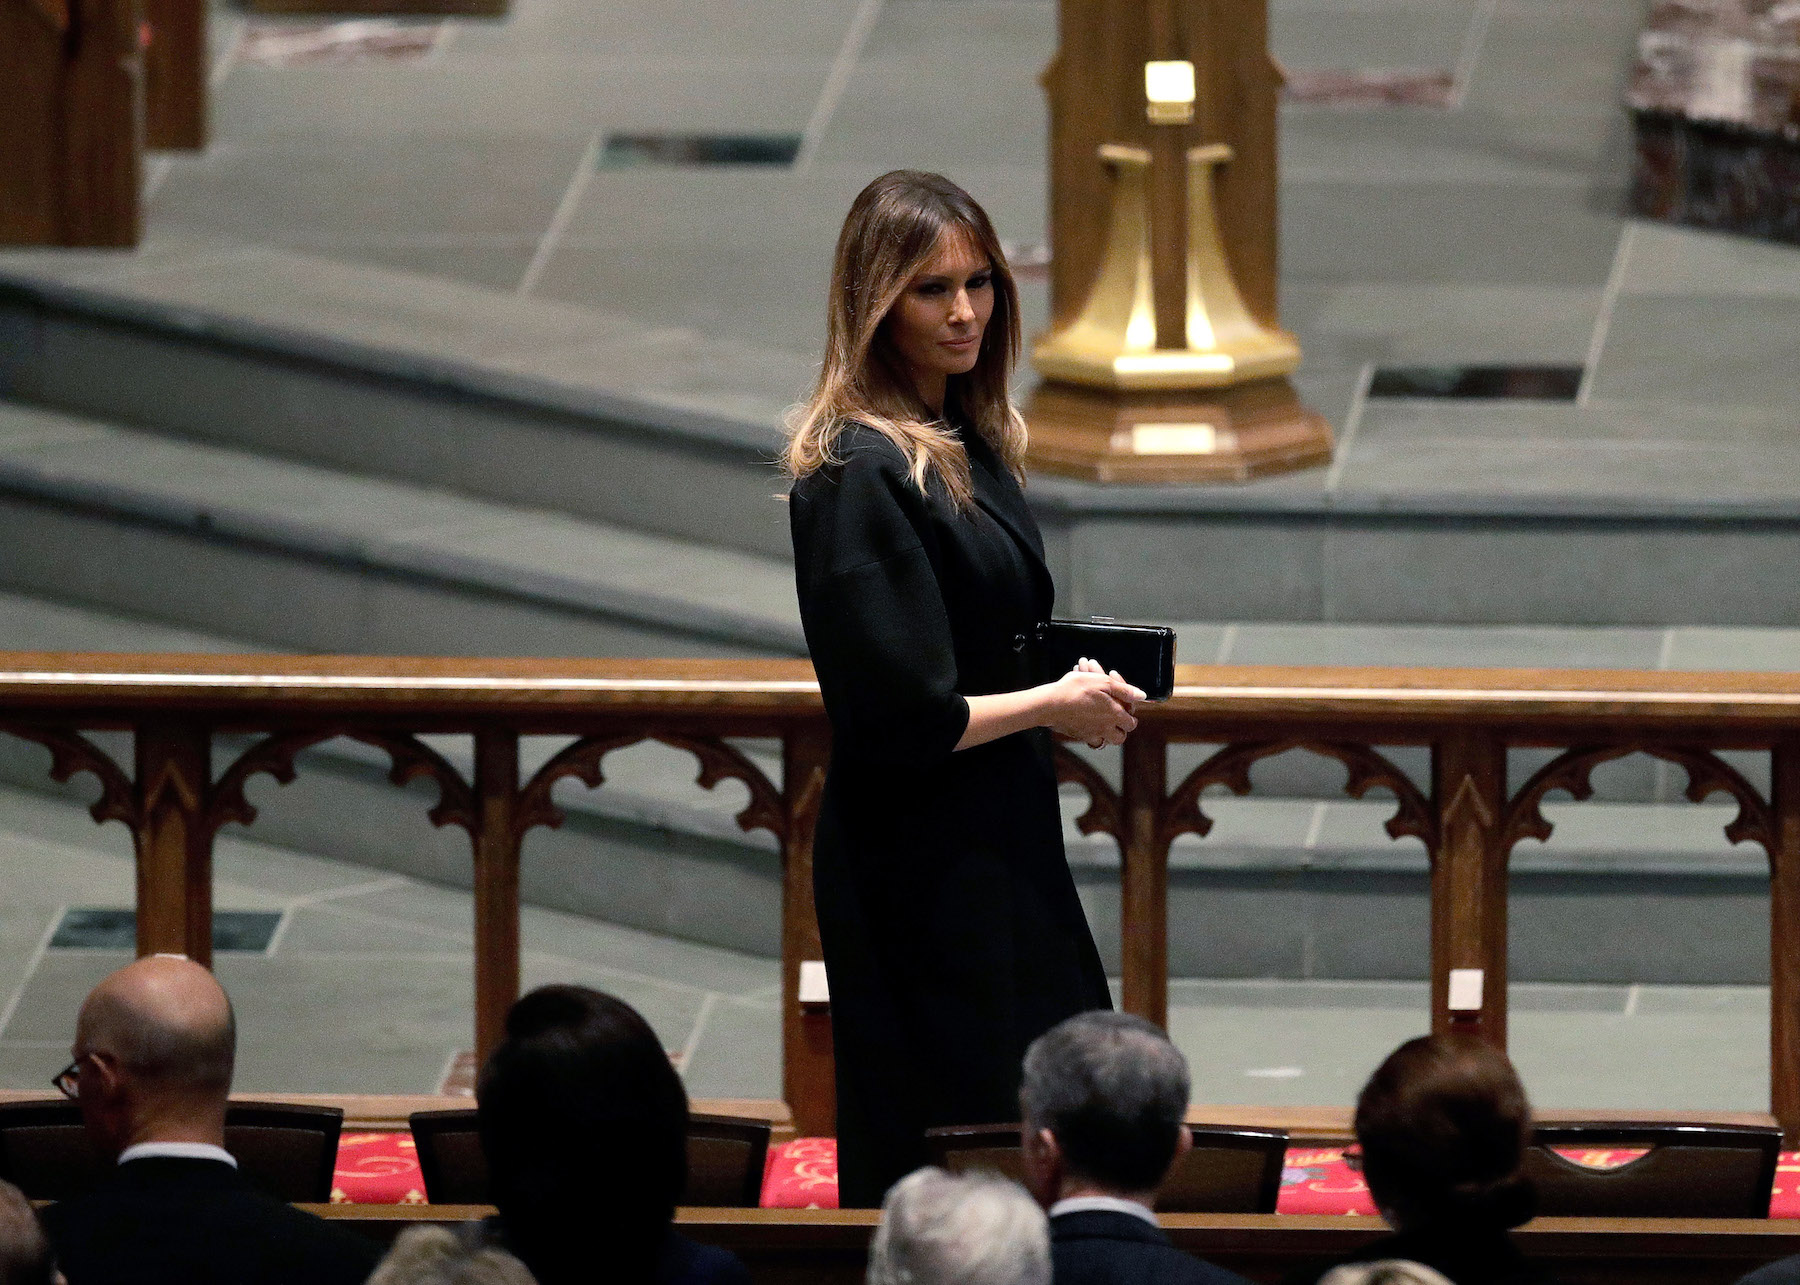 <div class='meta'><div class='origin-logo' data-origin='none'></div><span class='caption-text' data-credit='David J. Phillip-Pool/Getty Images'>First Lady Melania Trump arrives at St. Martin's Episcopal Church for a funeral service for former first lady Barbara Bush.</span></div>